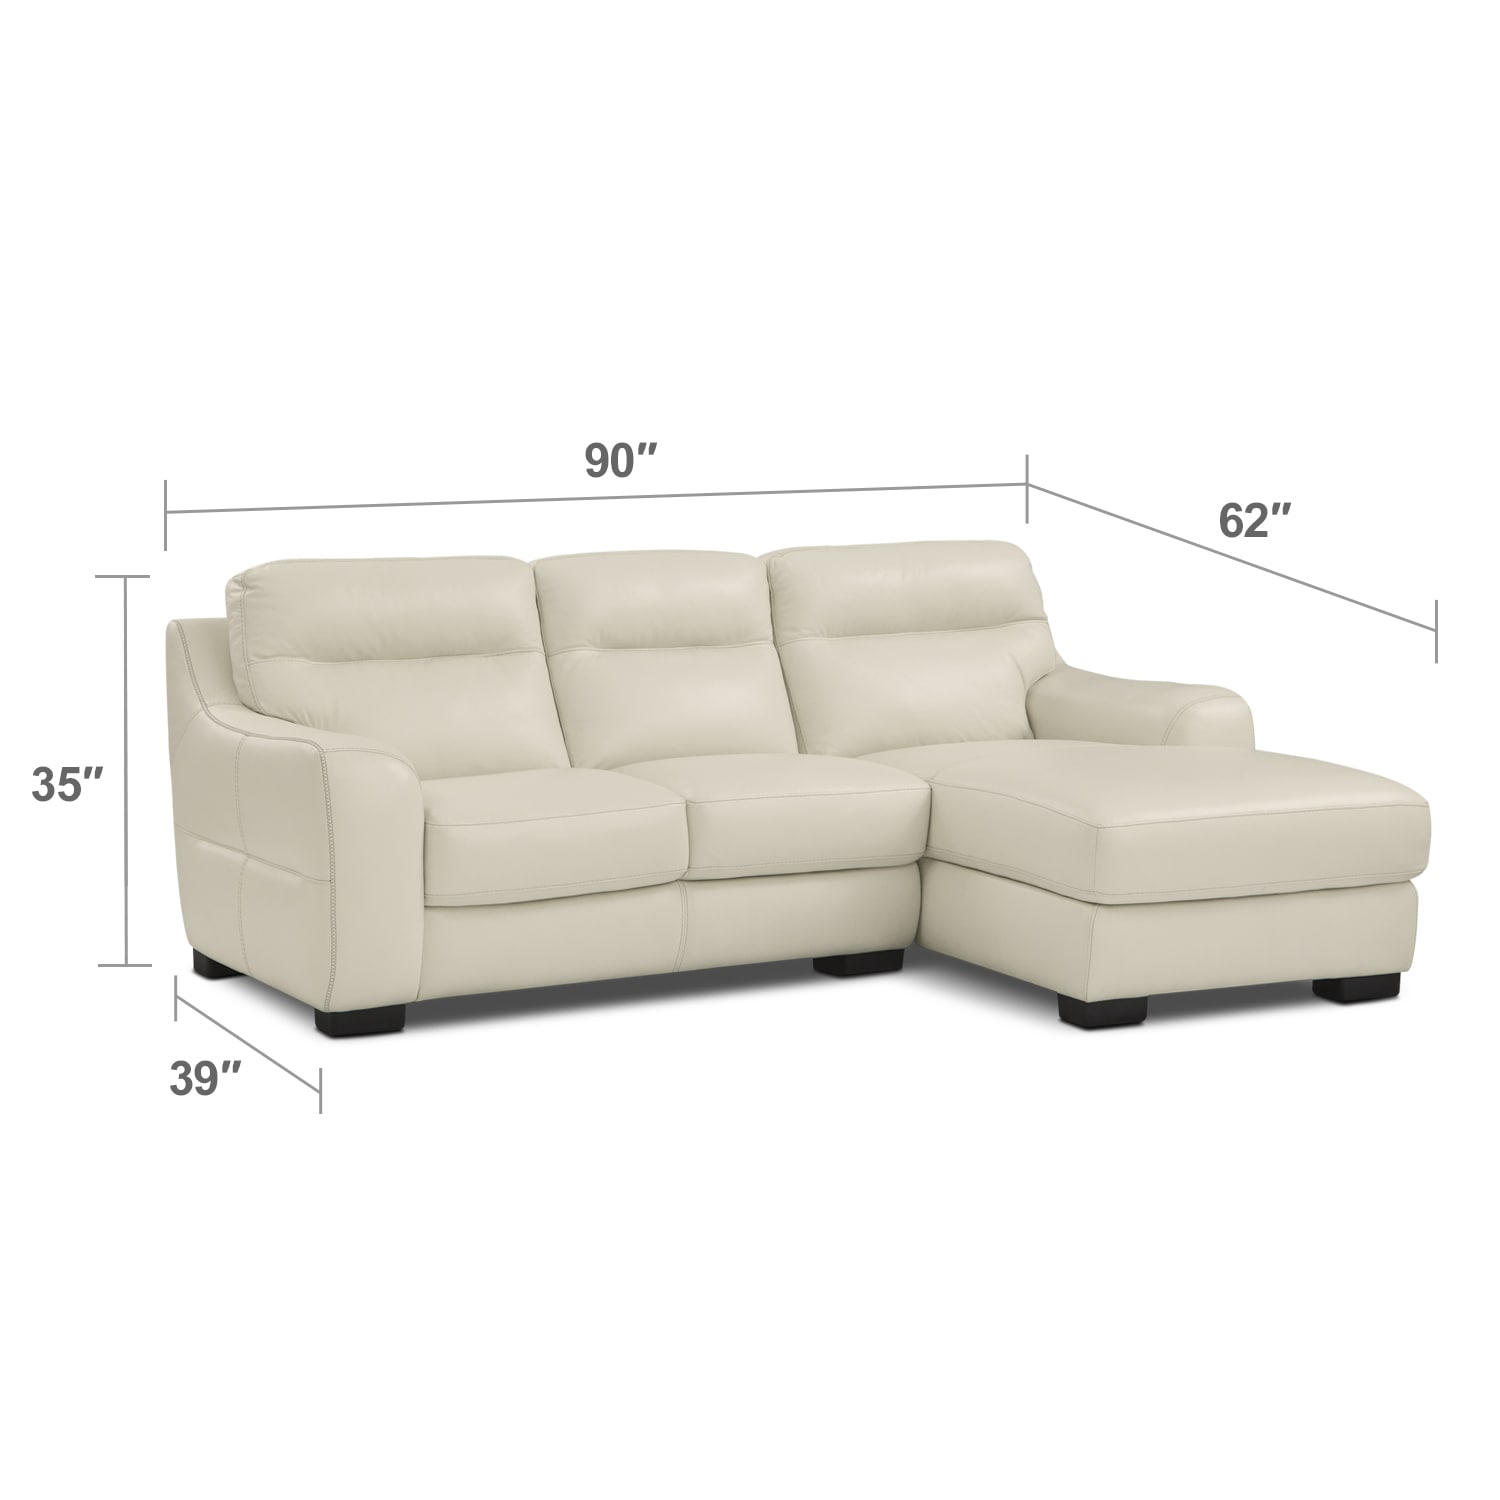 Living Room Furniture - Rocco 2-Piece Right-Facing Sectional - Snow